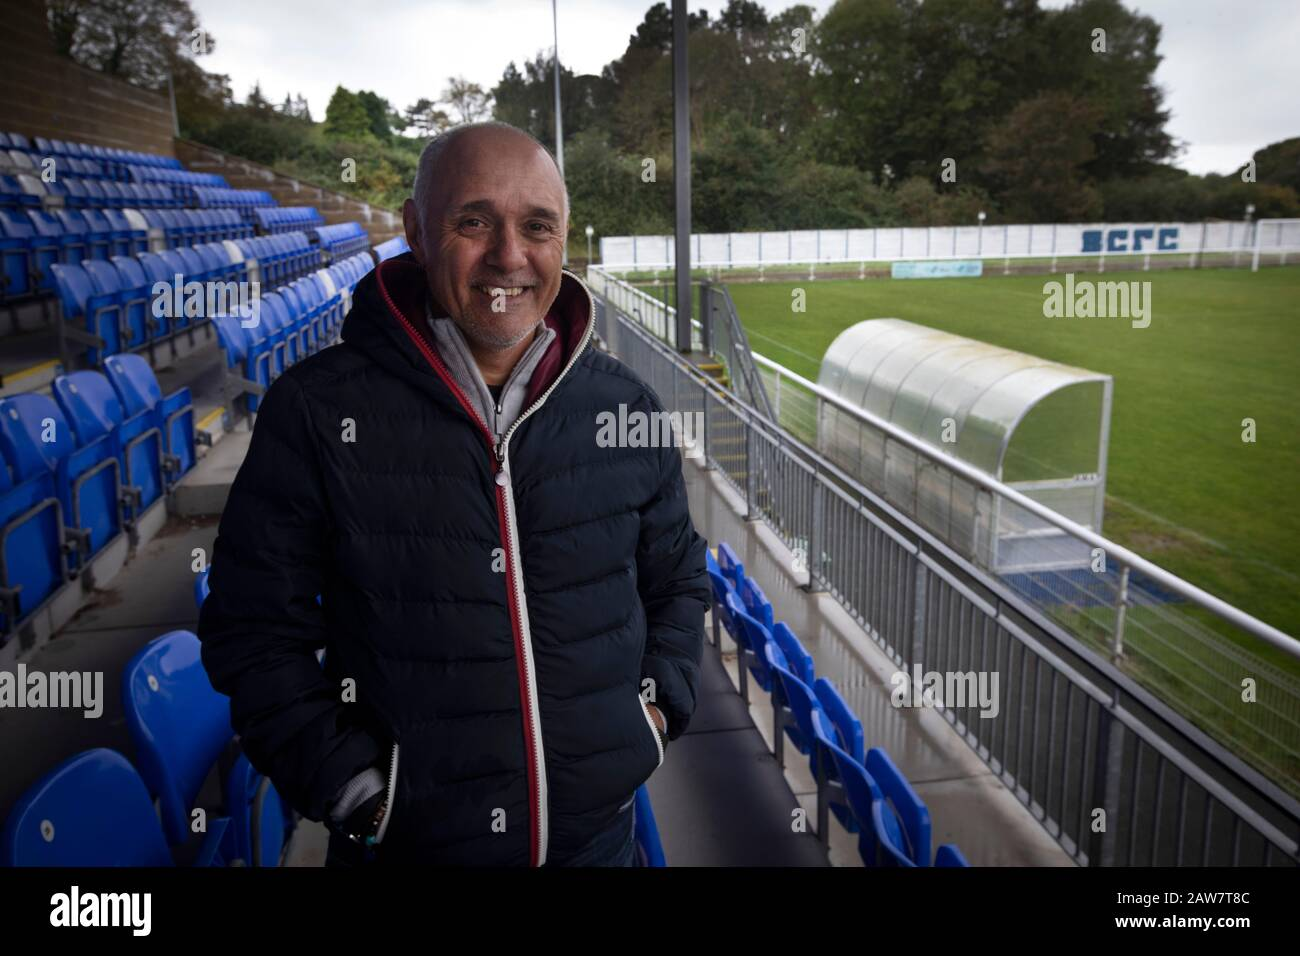 Former Argentina international footballer Pedro Pasculli, pictured at Nantporth Stadium, home of  Bangor City, where he was appointed  manager in October, 2019. This was the 1986 World Cup winner's 13th management position, having previously been in charge of the Albania and Uganda national teams as well as a host of clubs worldwide. Bangor City competed in the Cymru Alliance, the second tier of Welsh football having been demoted due to financial irregularities at the end of the 2017-18 season. The club was owned by Italian Domenico Serafino. Stock Photo